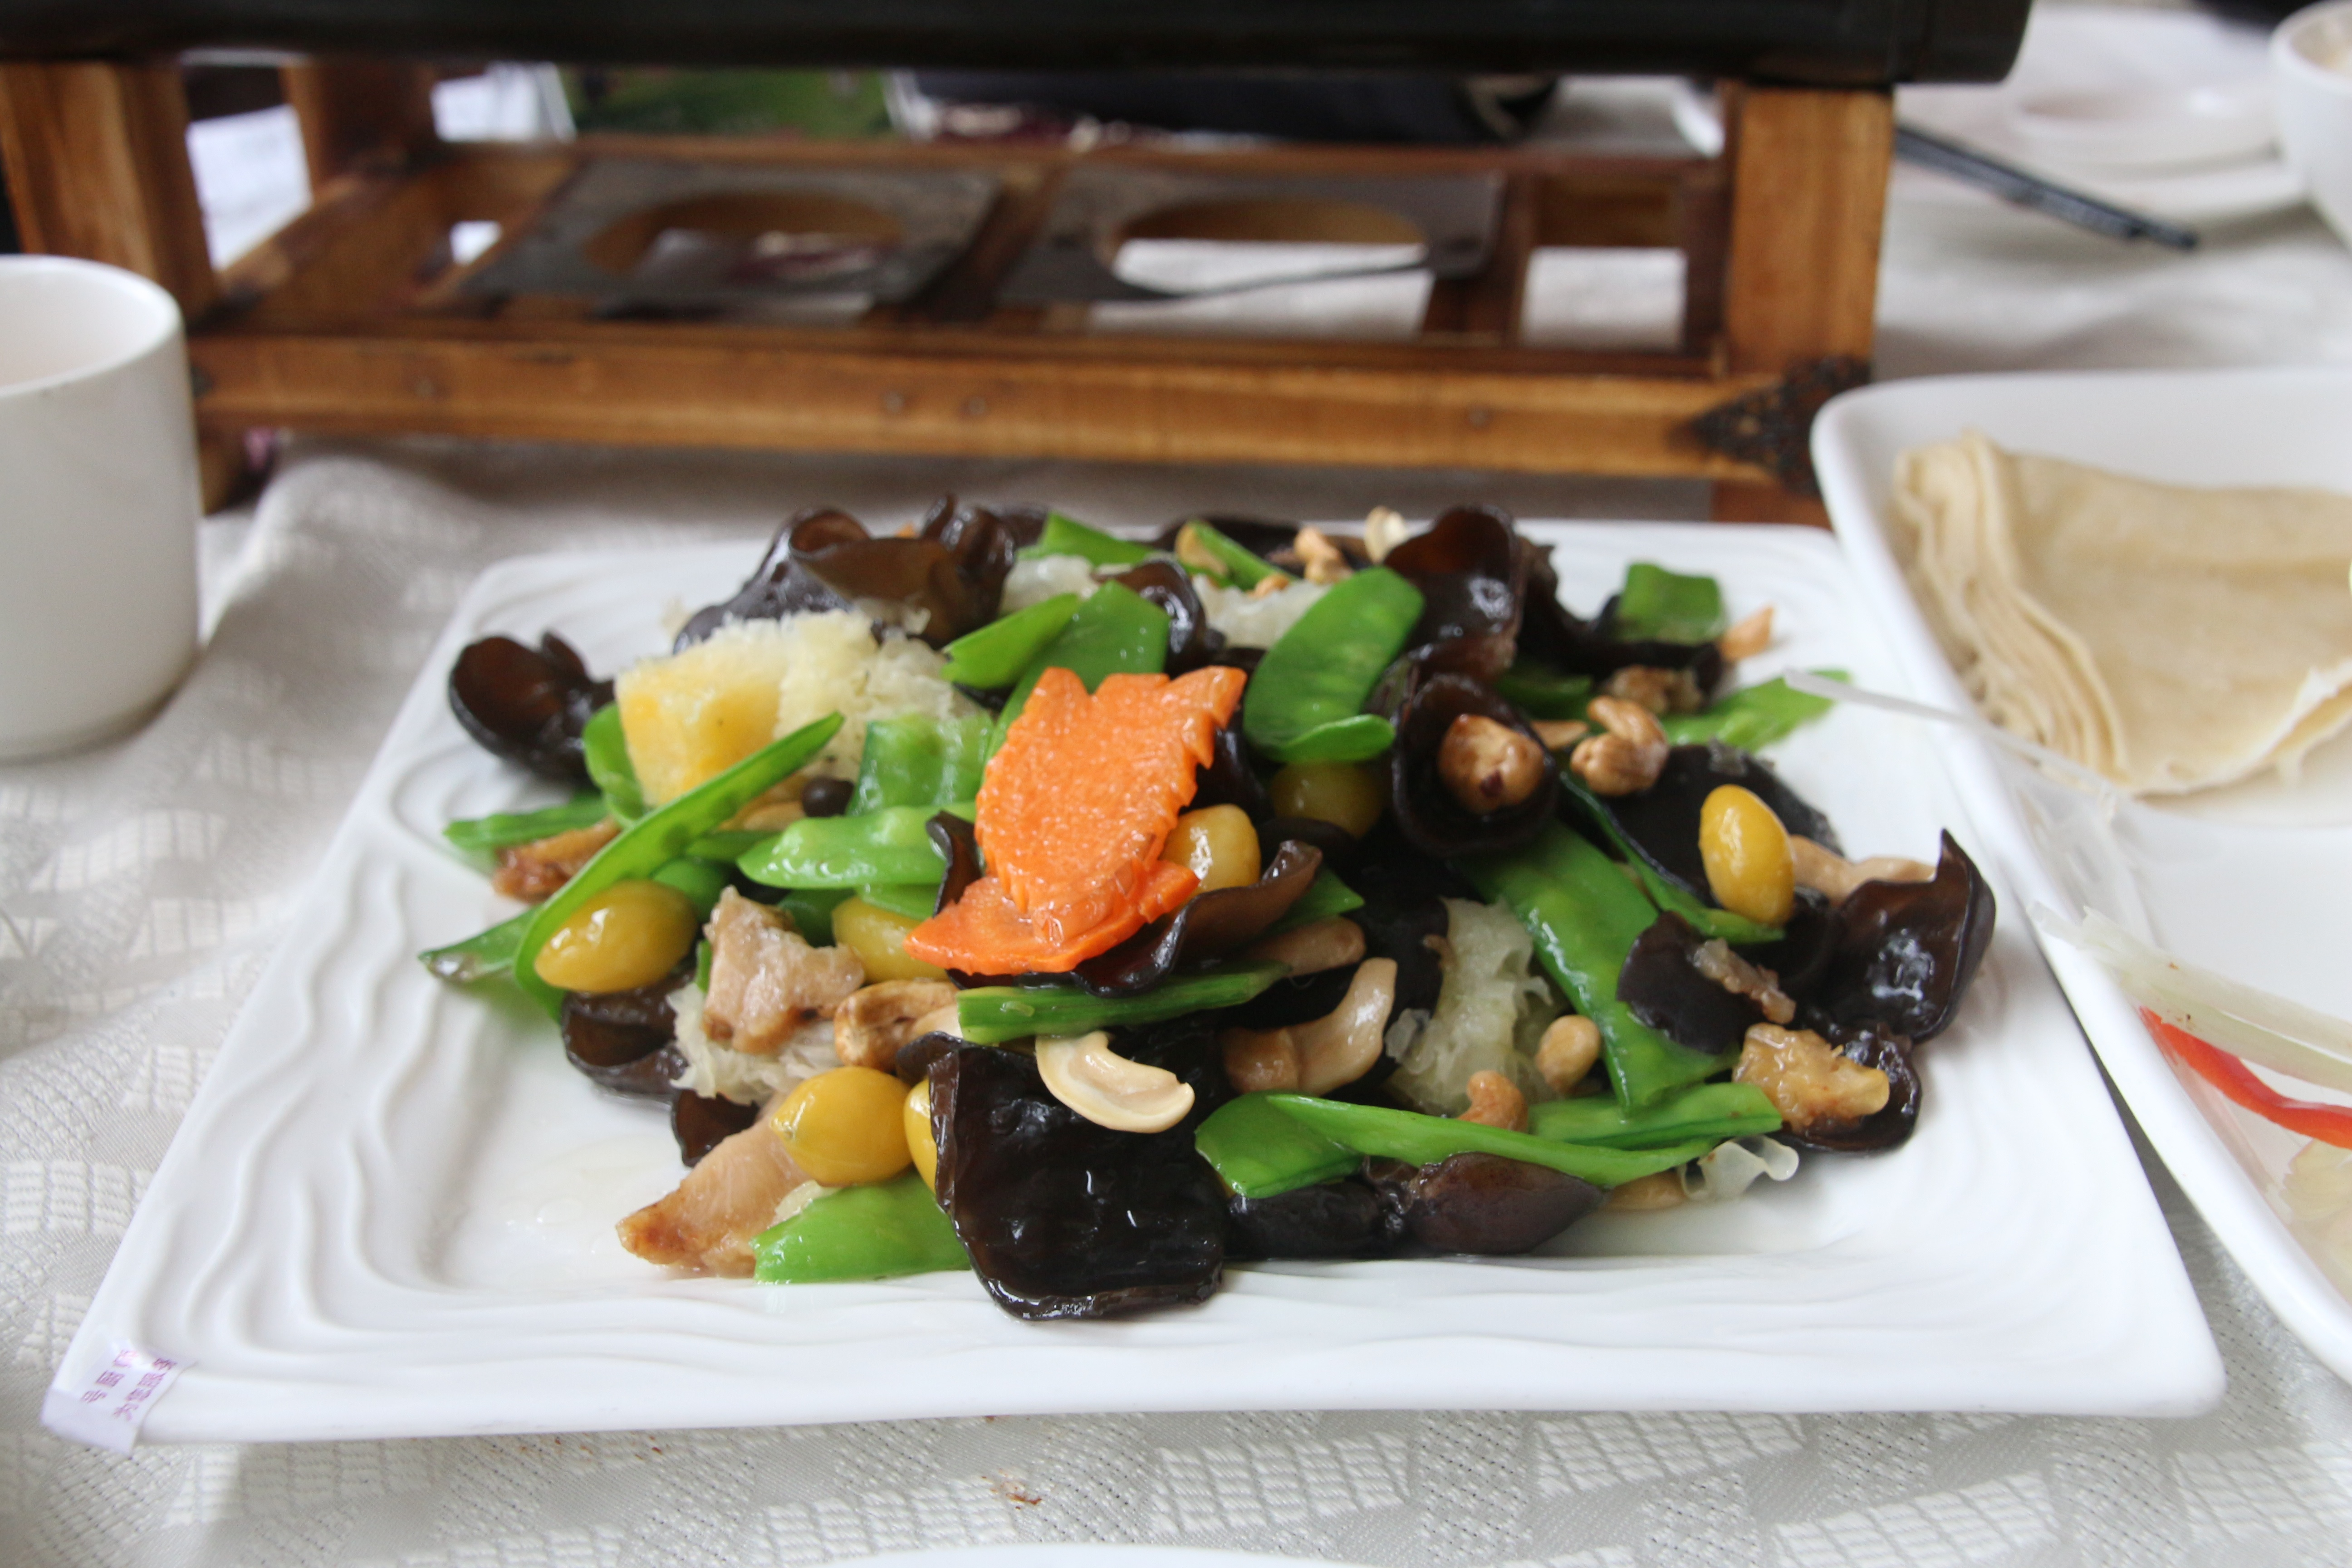 mixed vegetables author lucke charlie prepared a